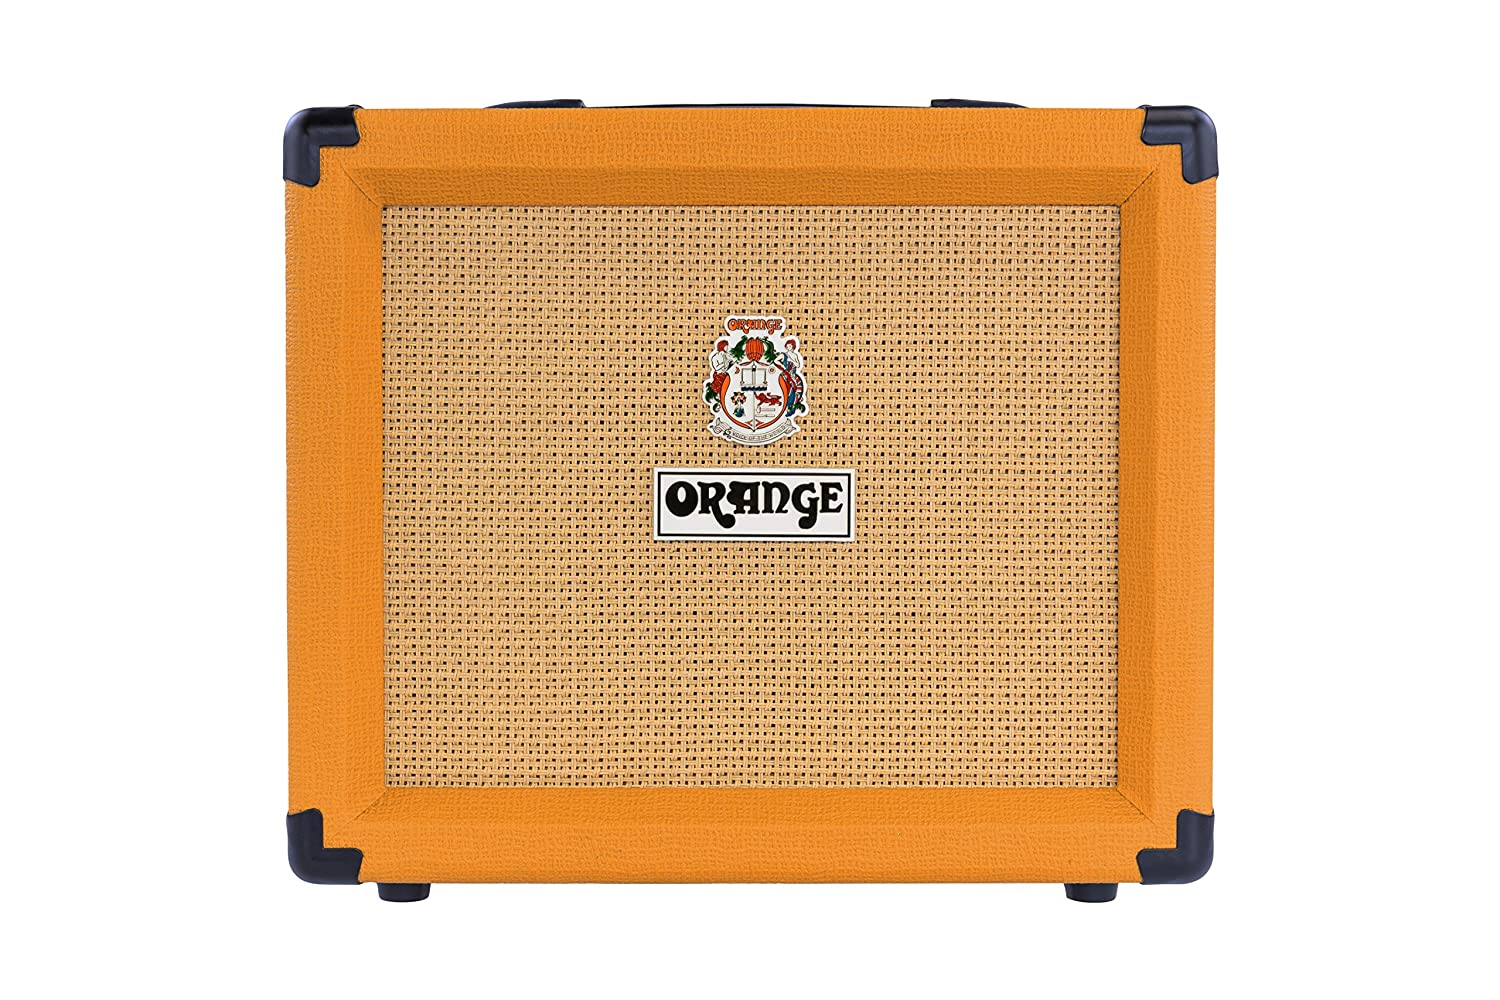 2. Orange Crush 20 Twin-Channel 20W Guitar Amplifier